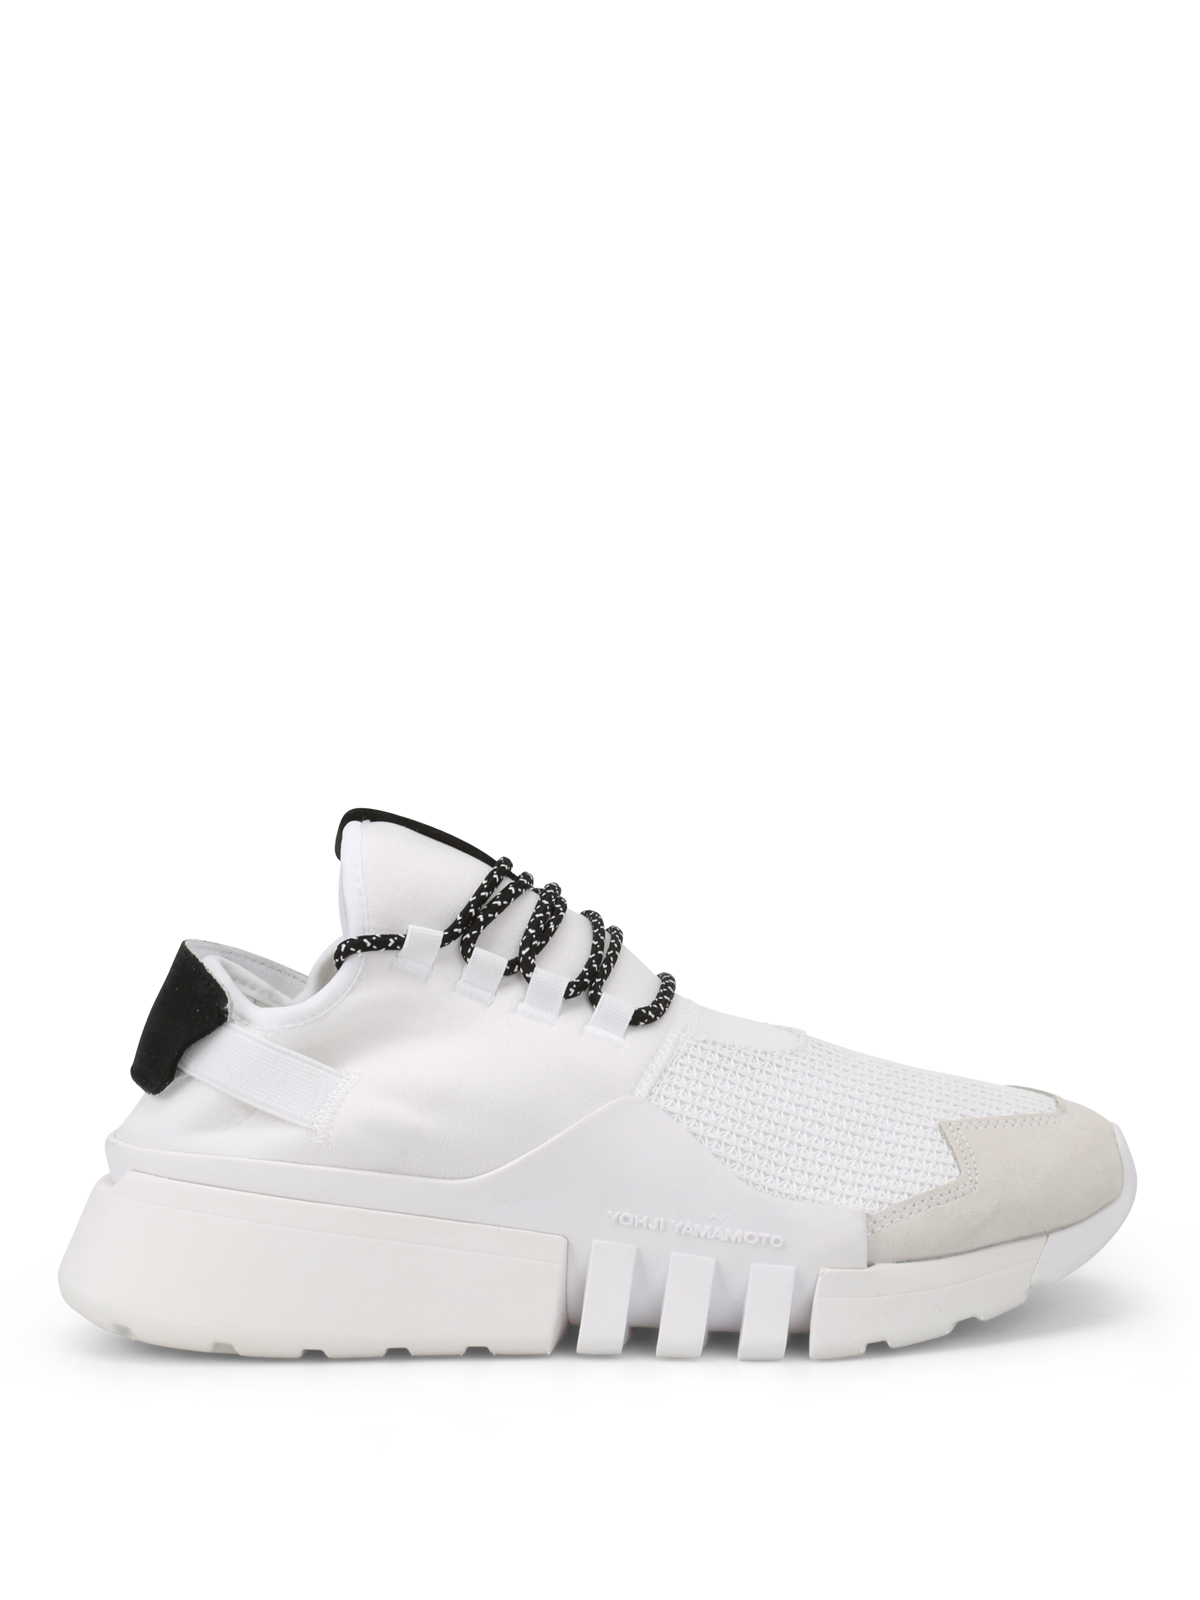 12359bff14127 Adidas Y-3 - Ayero white sneakers - trainers - AC7203